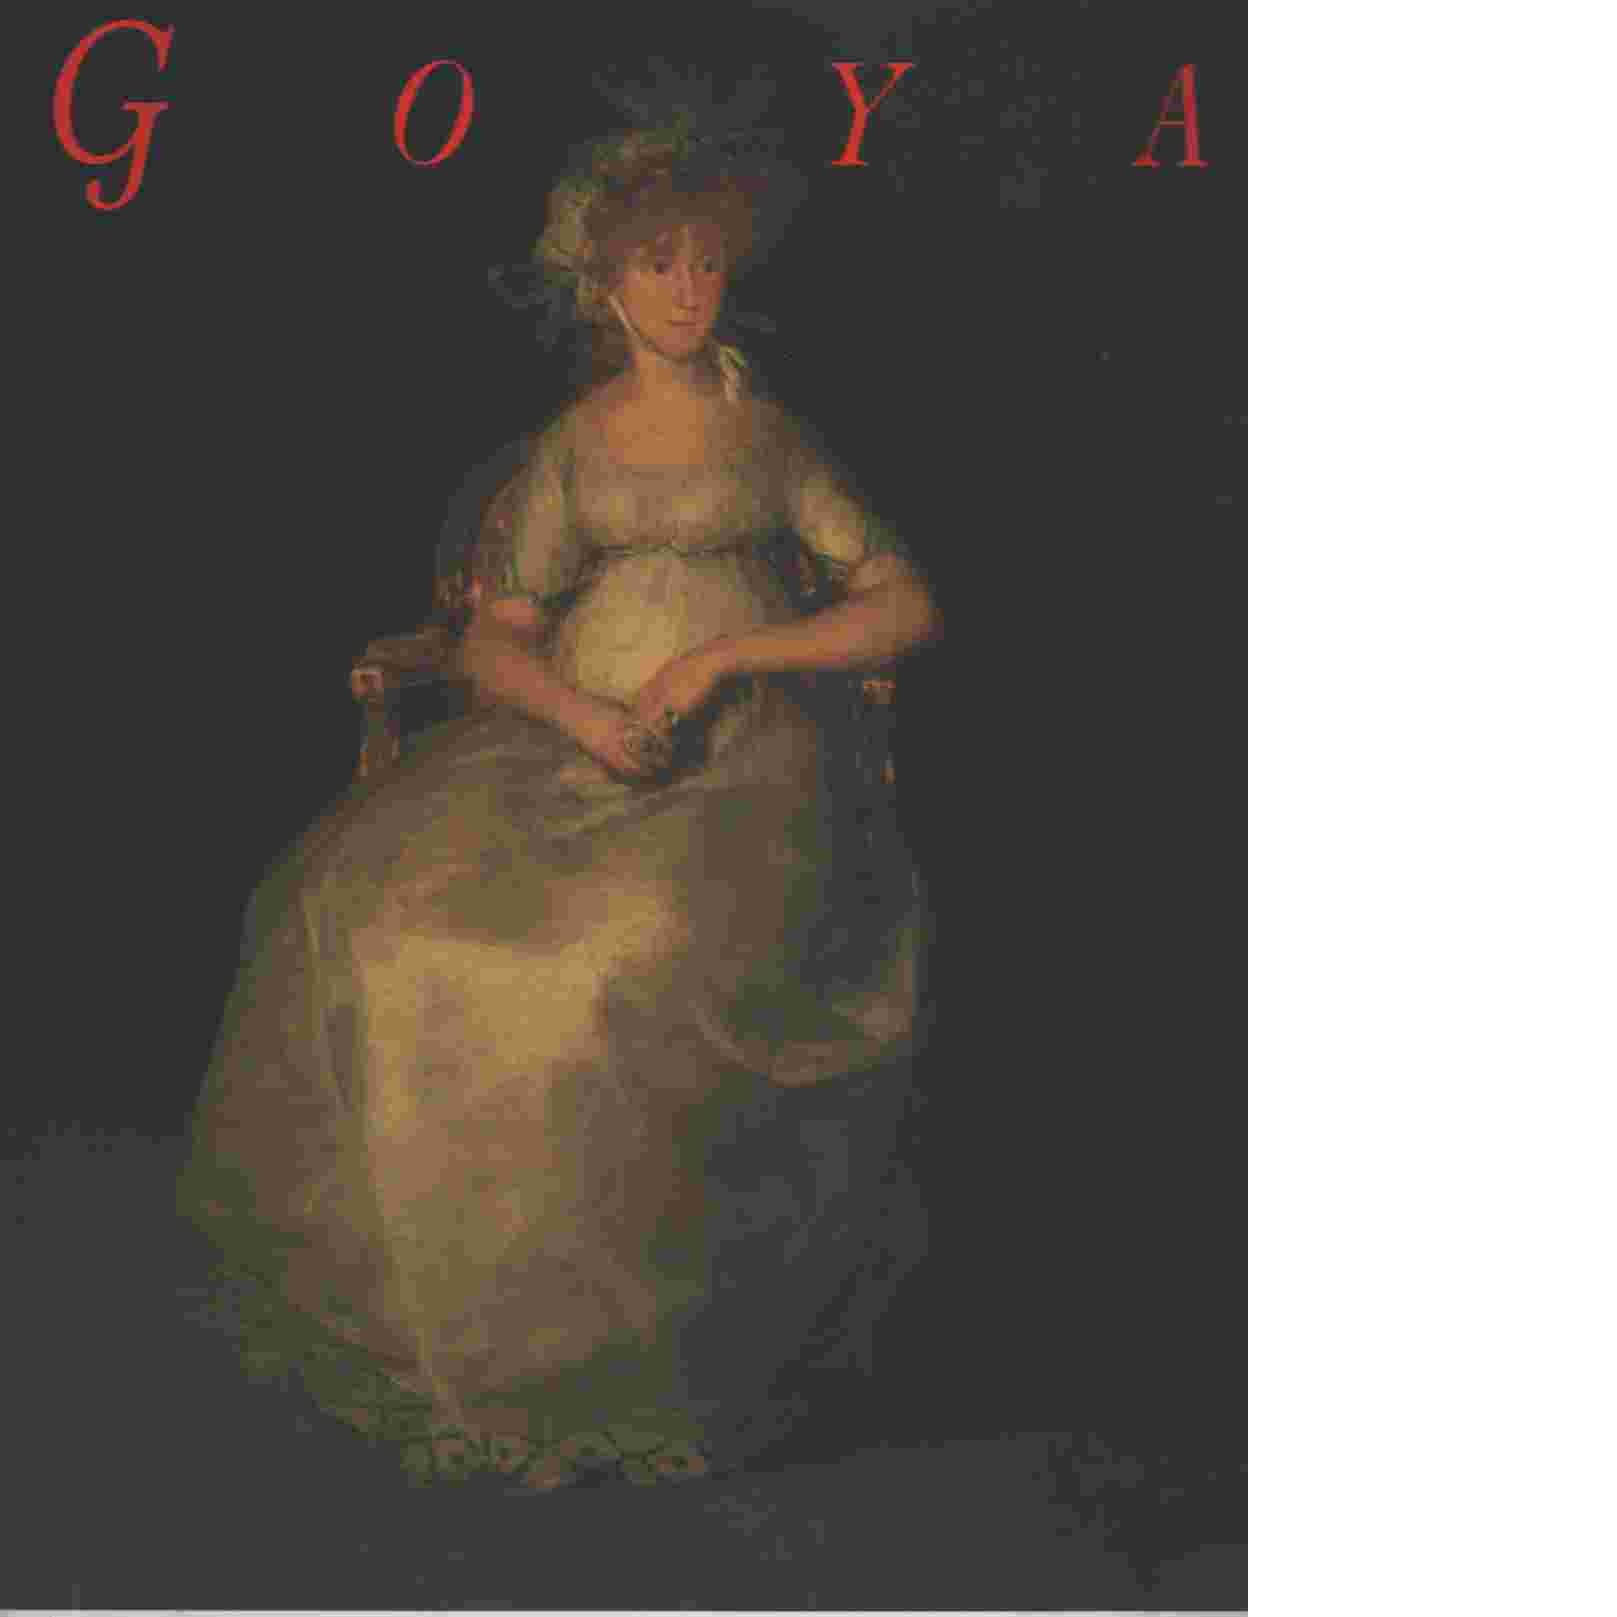 Goya  Nationalmuseum, Stockholm 7 oktober 1994-8 januari 1995 - Goya, Francisco de